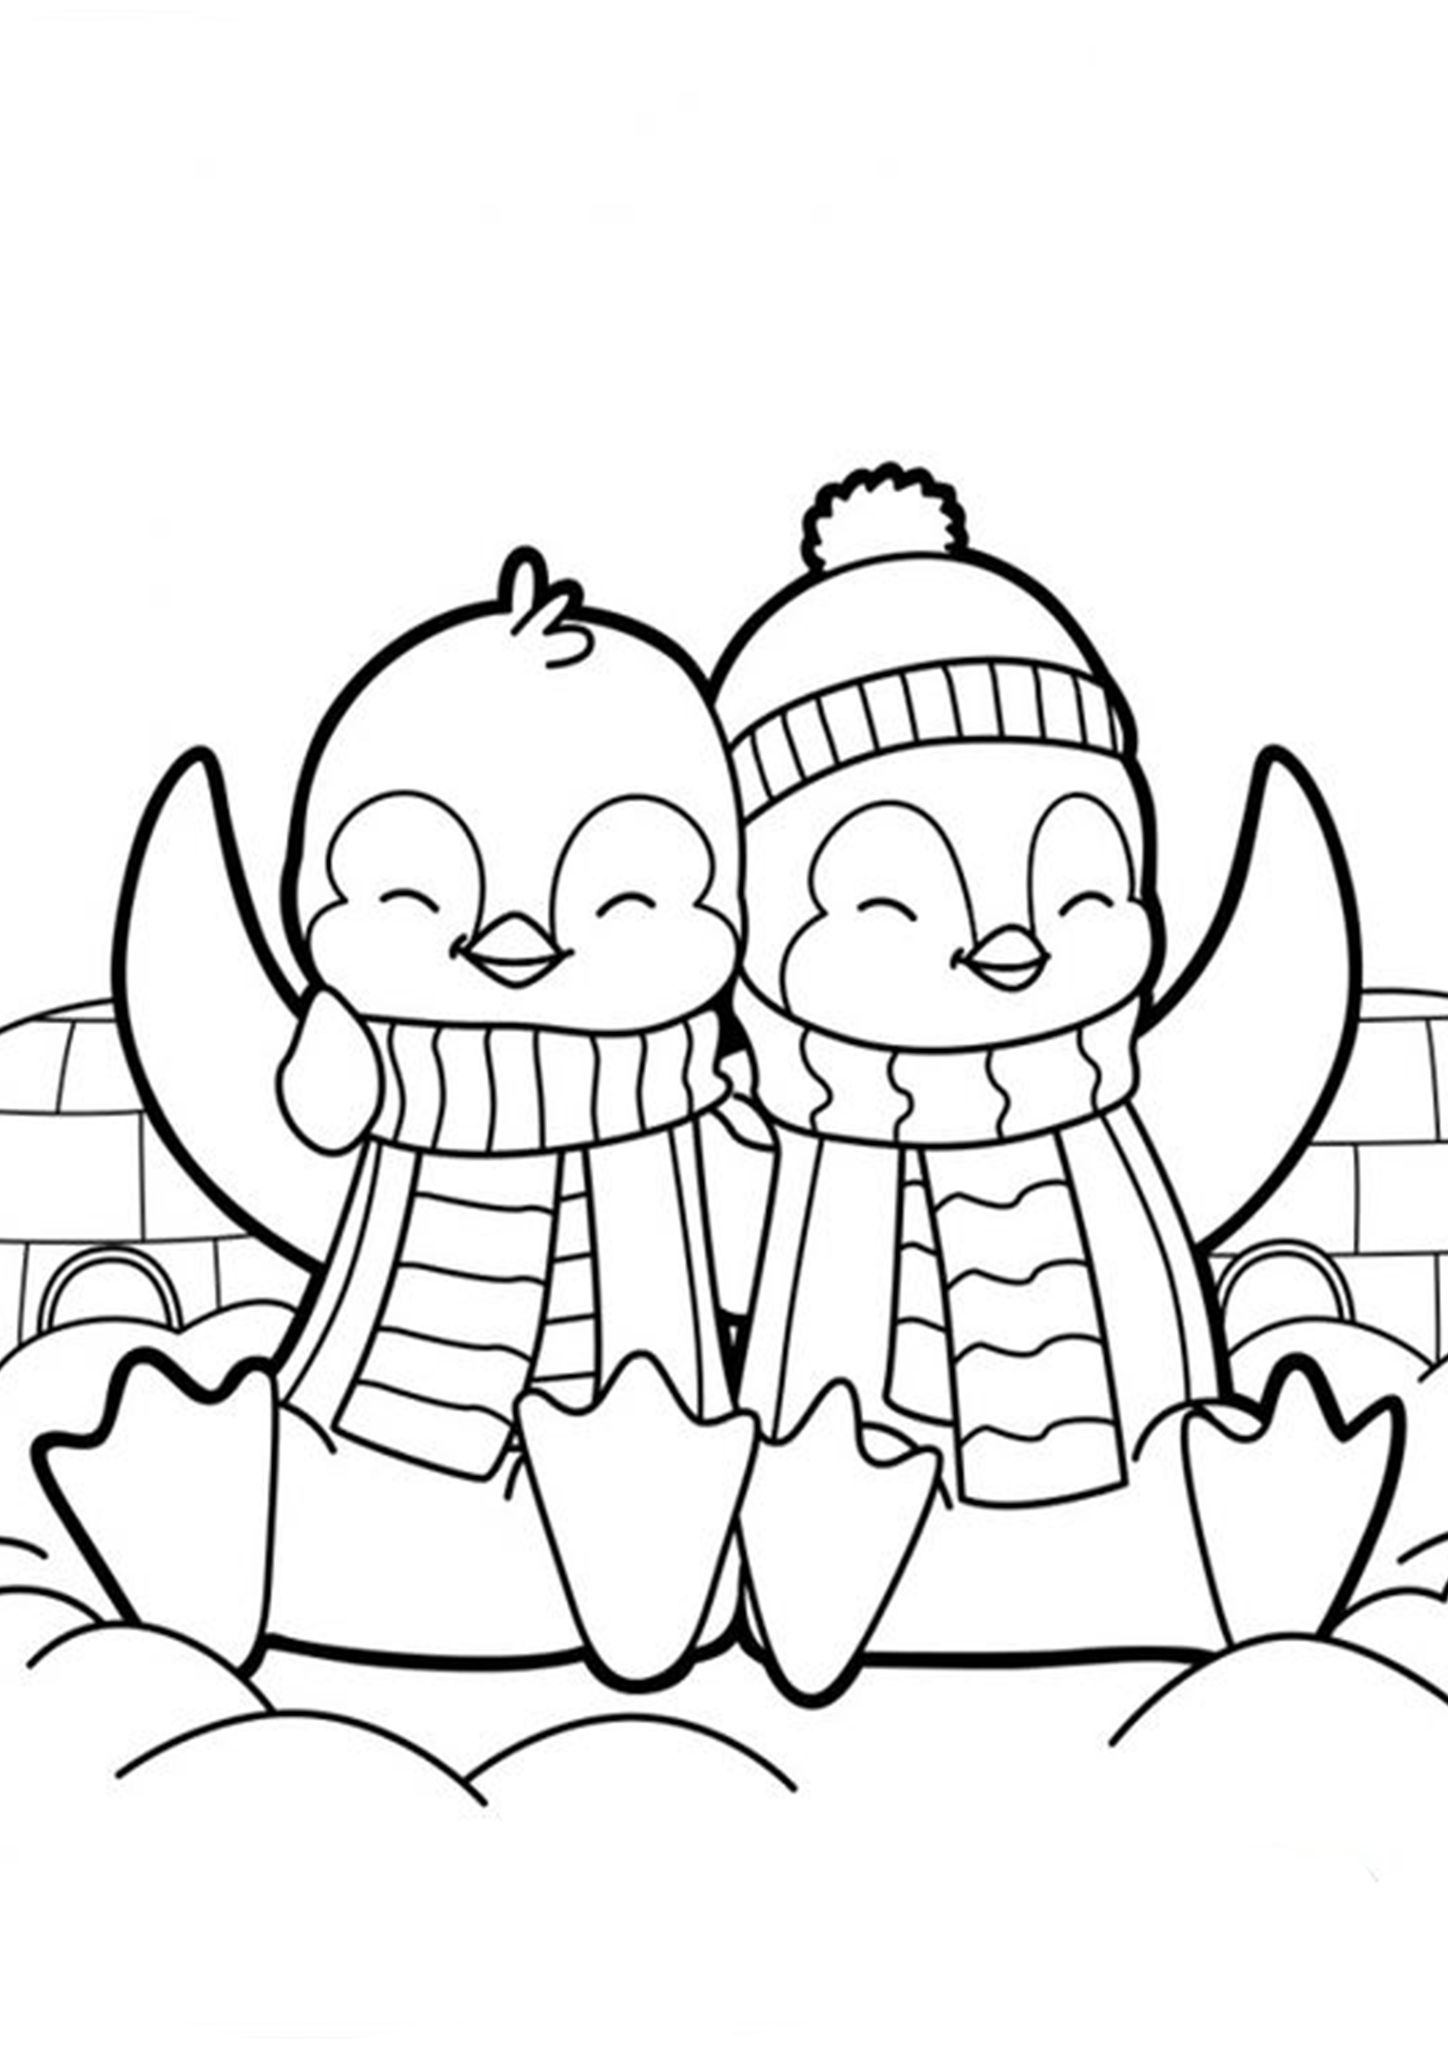 Free Easy To Print Penguin Coloring Pages Penguin Coloring Pages Penguin Coloring Baby Coloring Pages